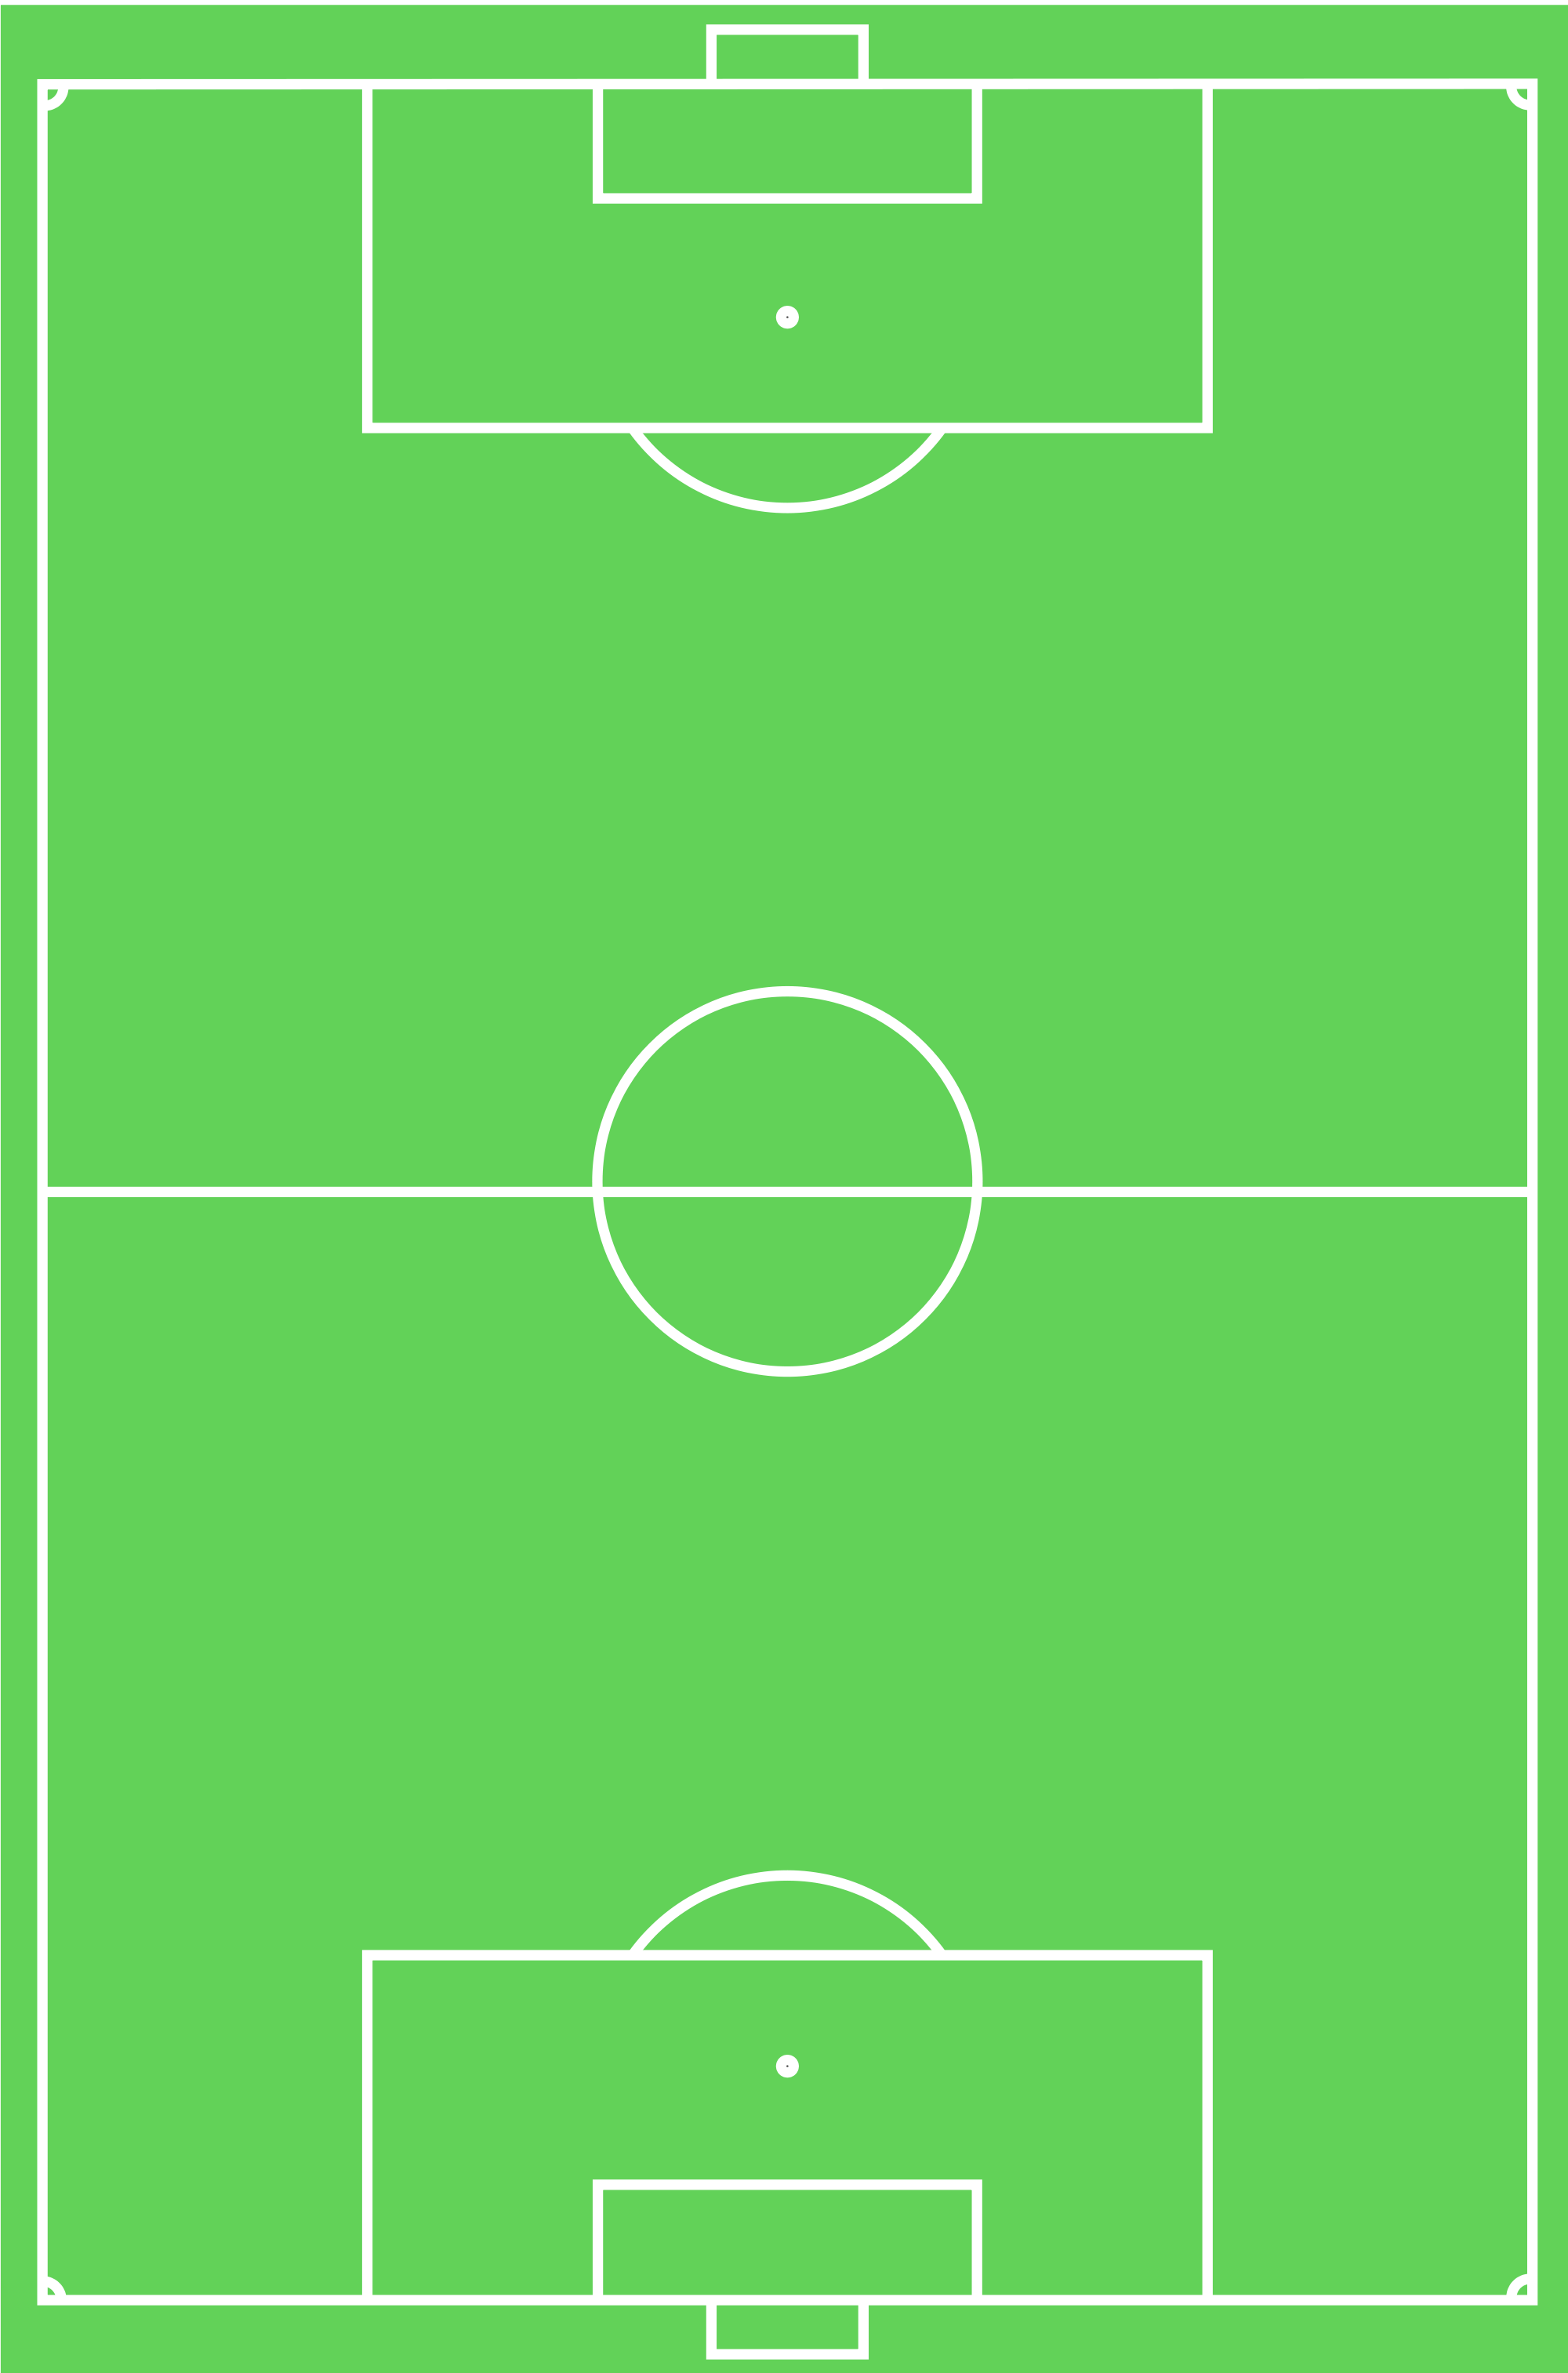 Soccer field layout printable. Youtube clipart dimension